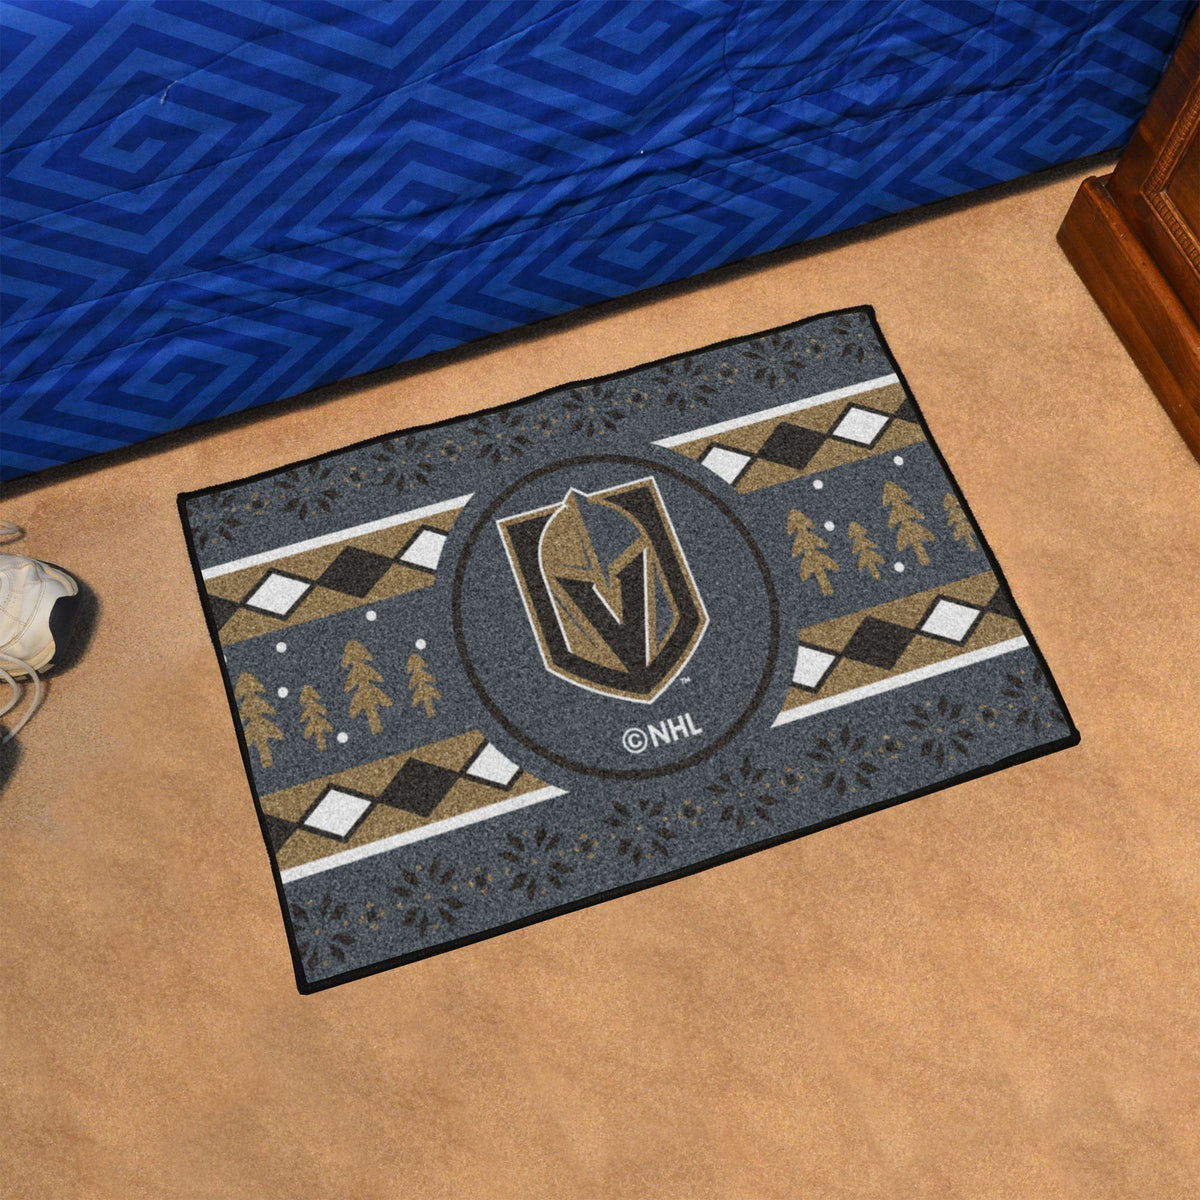 NHL - Holiday Sweater Starter Mat NHL Mats, Rectangular Mats, Holiday Sweater Starter Mat, NHL, Home Fan Mats Vegas Golden Knights